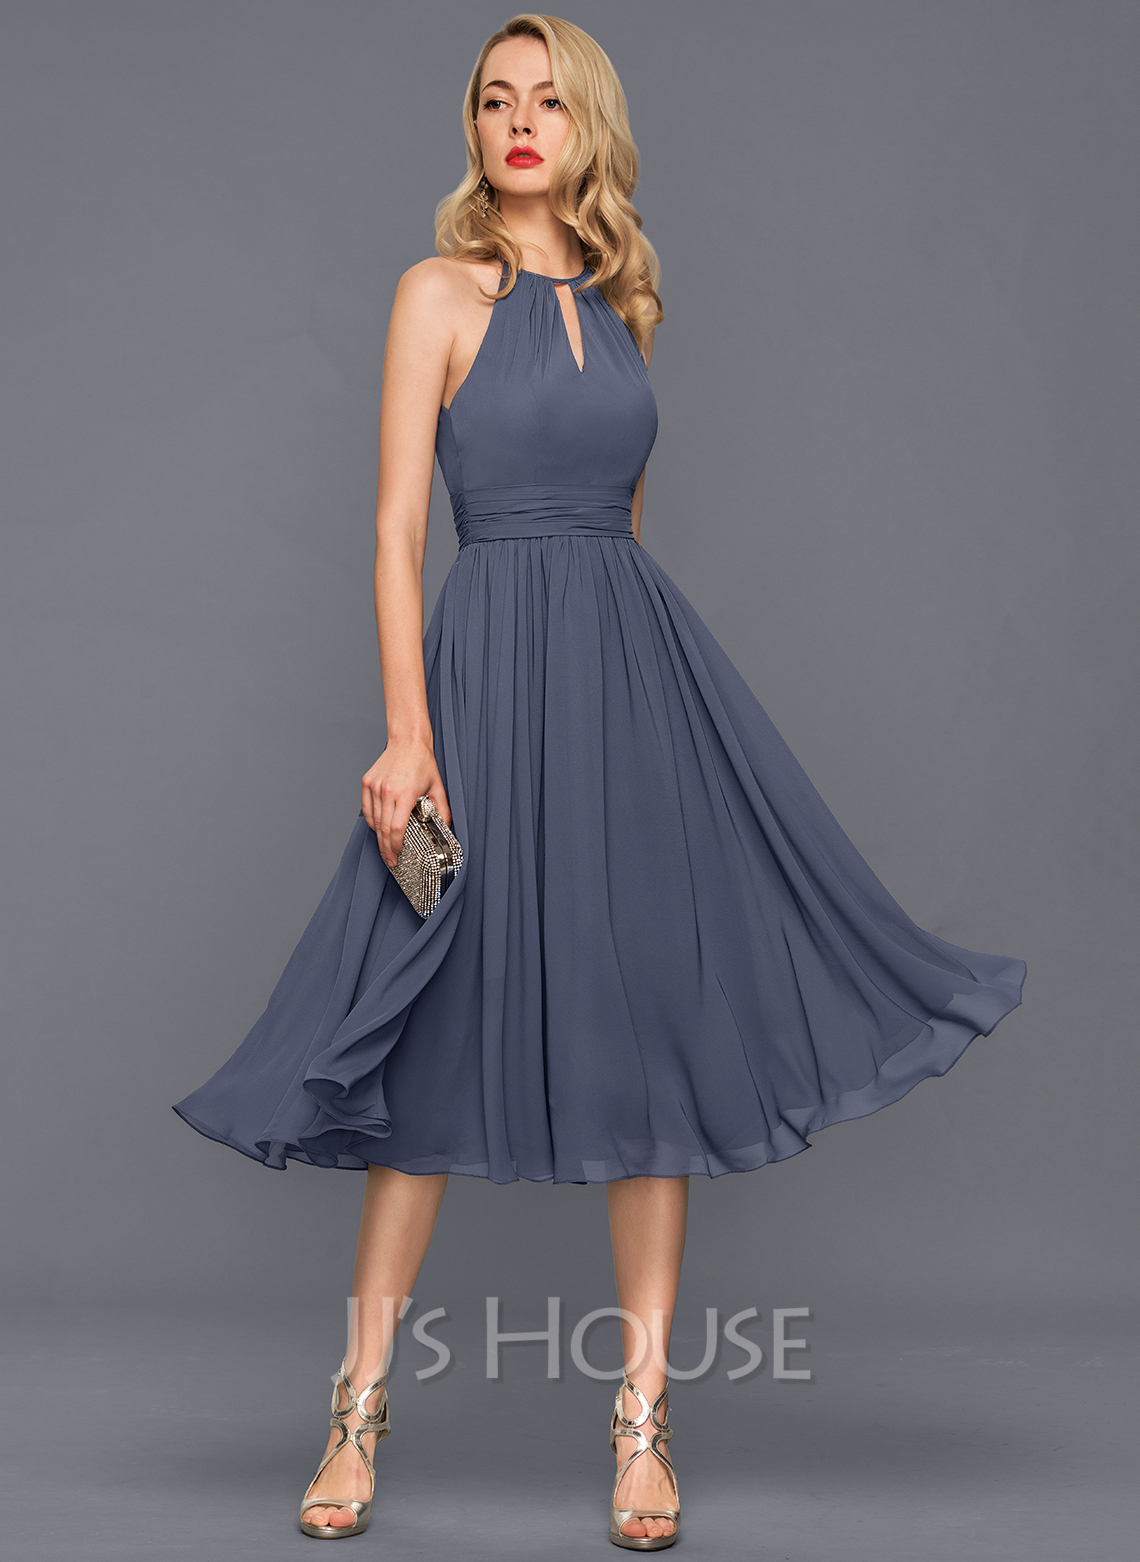 54a588f382d A-Line Scoop Neck Knee-Length Chiffon Cocktail Dress With Ruffle. Loading  zoom